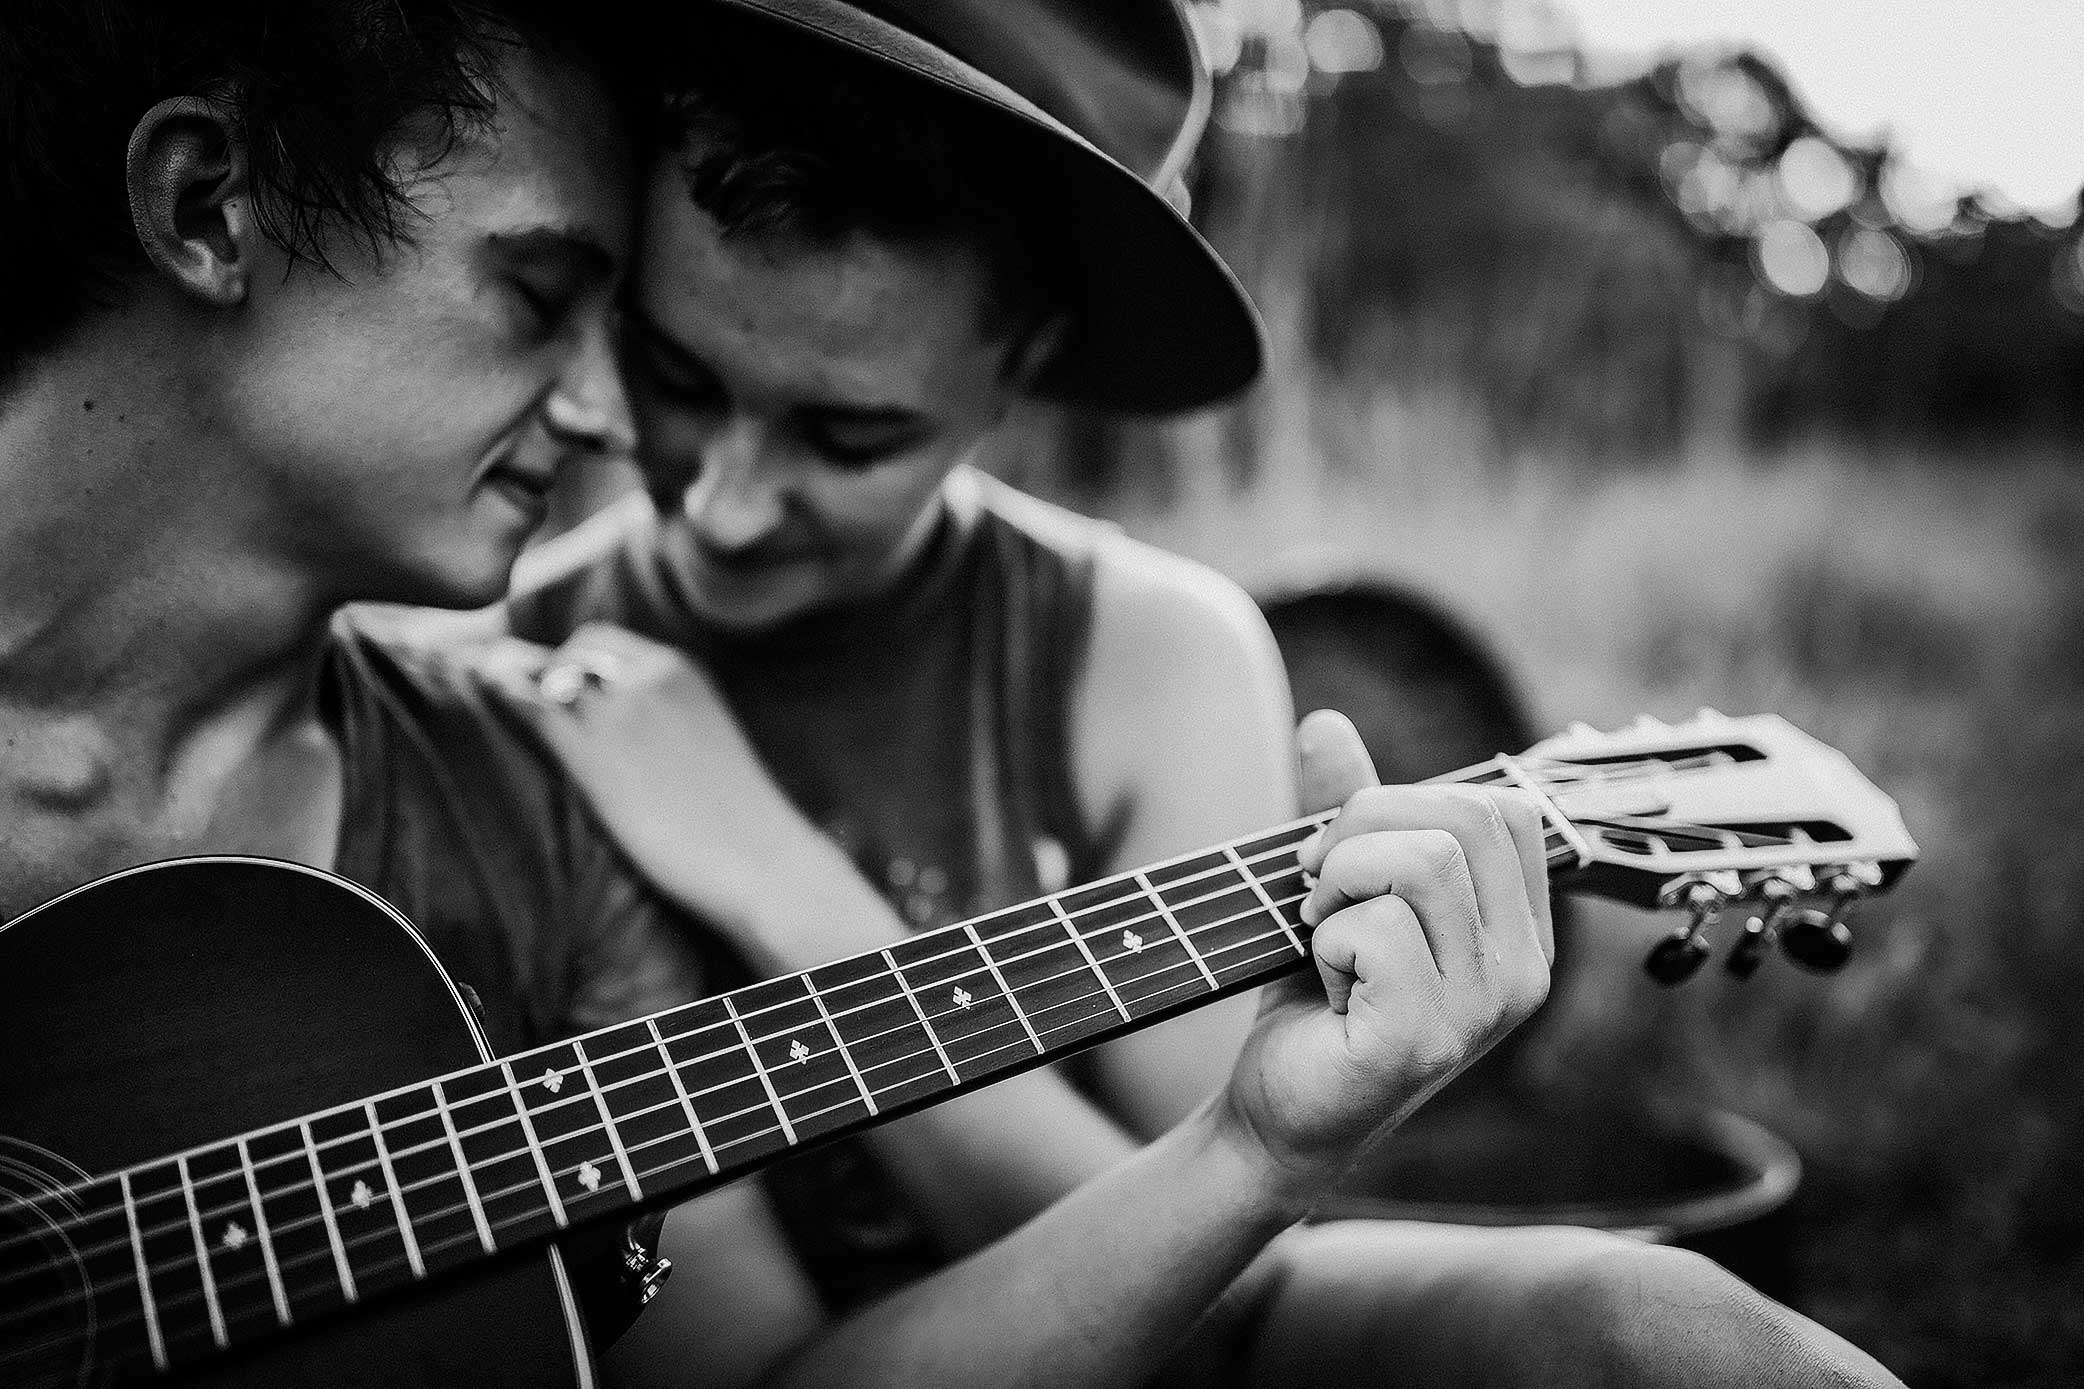 shelby-schiller-photography-couples-close-up-playing-guitar.jpg